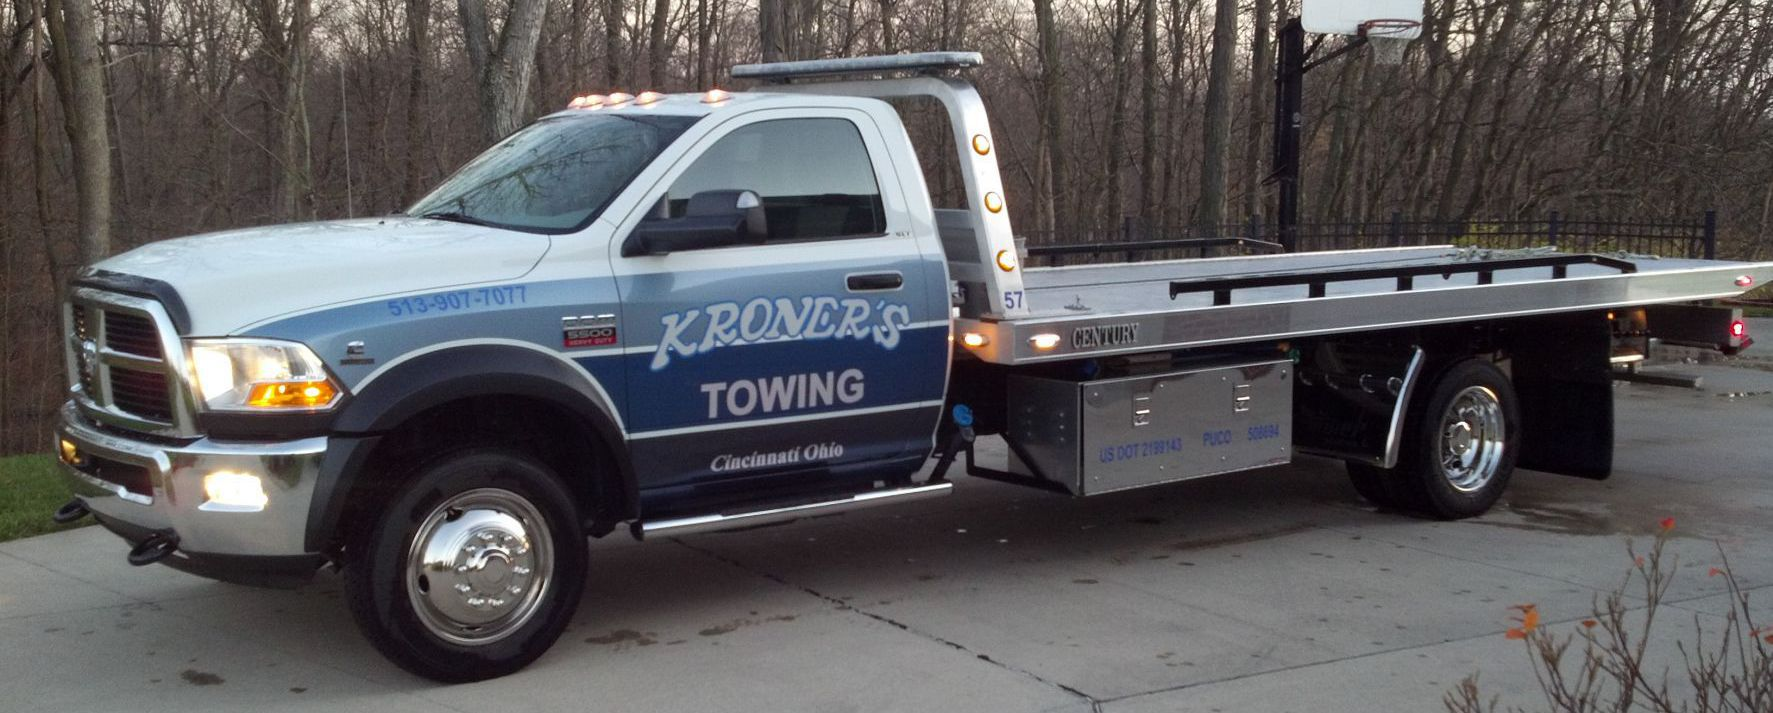 towing service in Cincinnati, OH